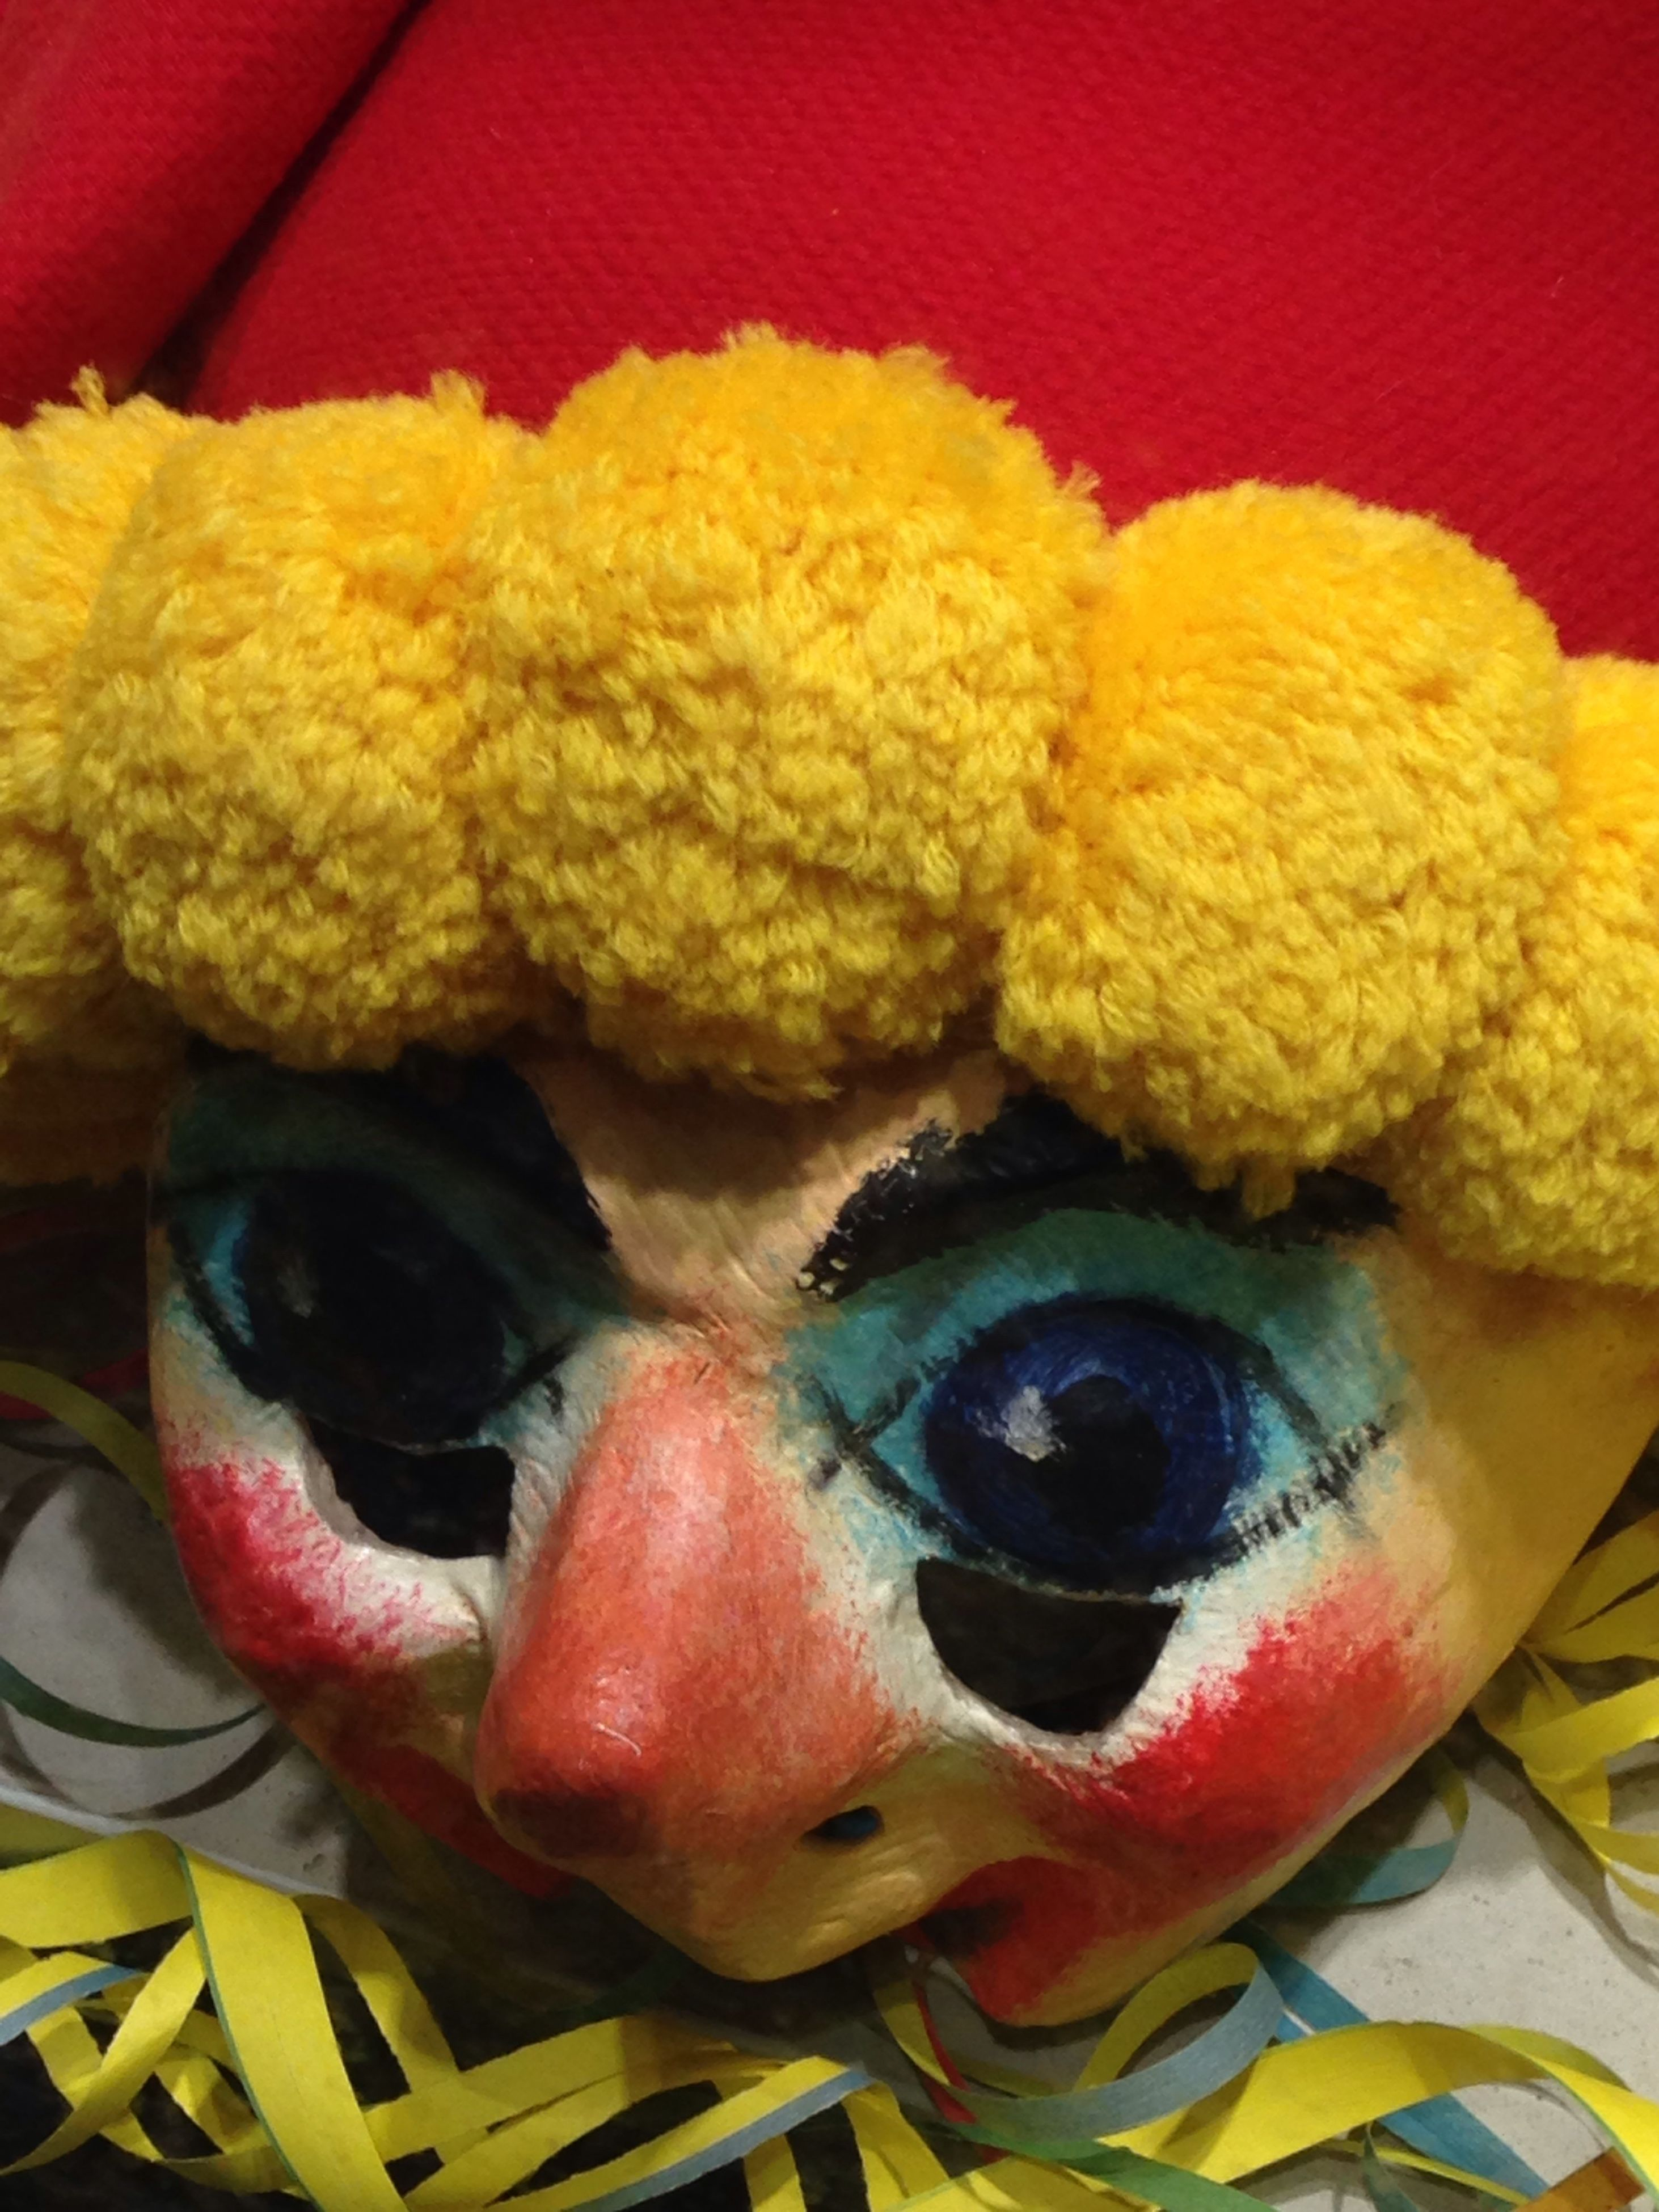 toy, animal representation, stuffed toy, teddy bear, yellow, close-up, toy animal, no people, childhood, indoors, clown